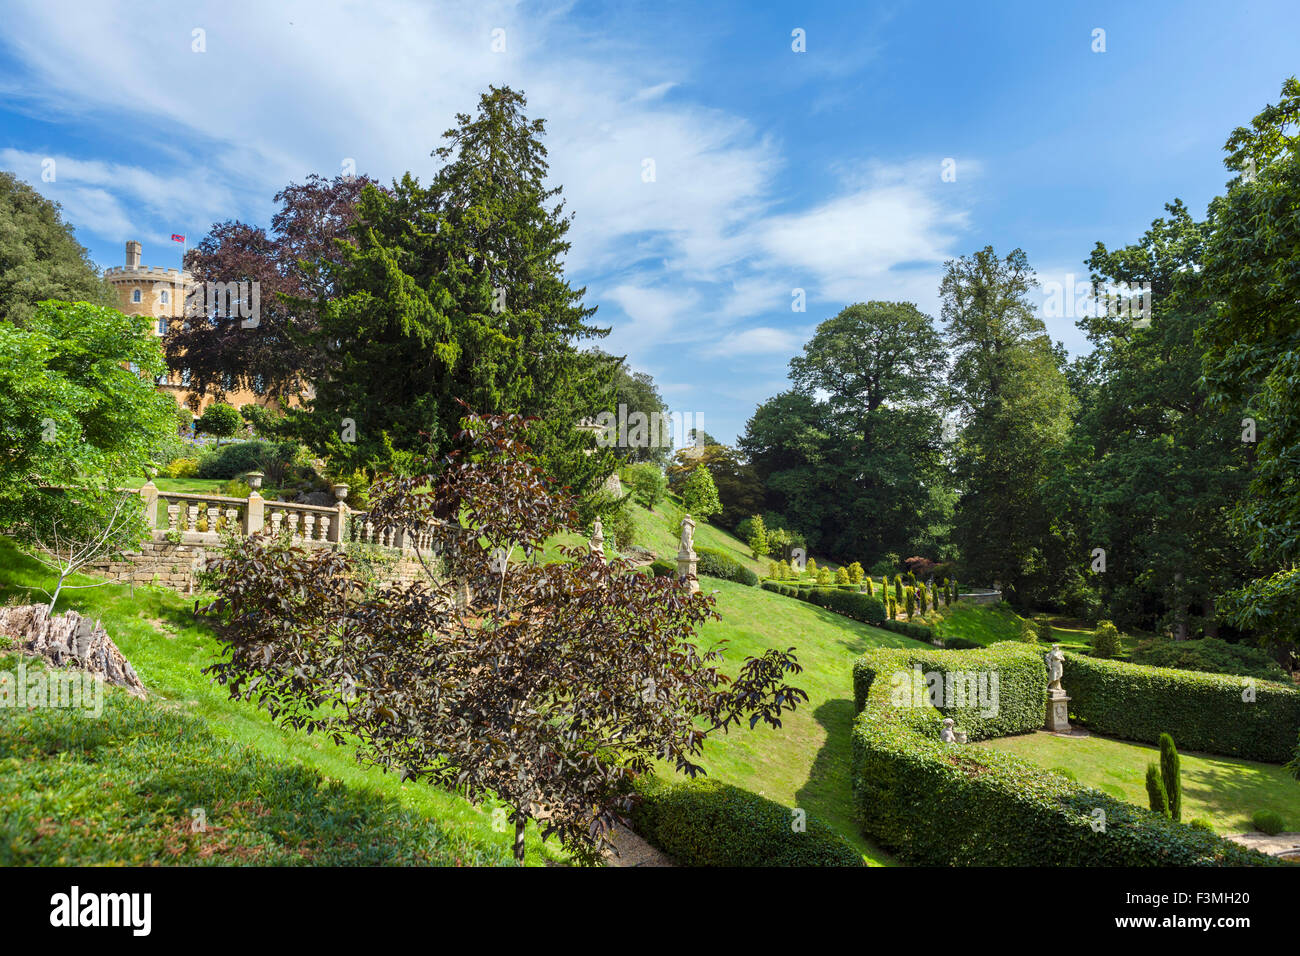 The gardens at Belvoir Castle, a stately home in Leicestershire, England, UK - Stock Image